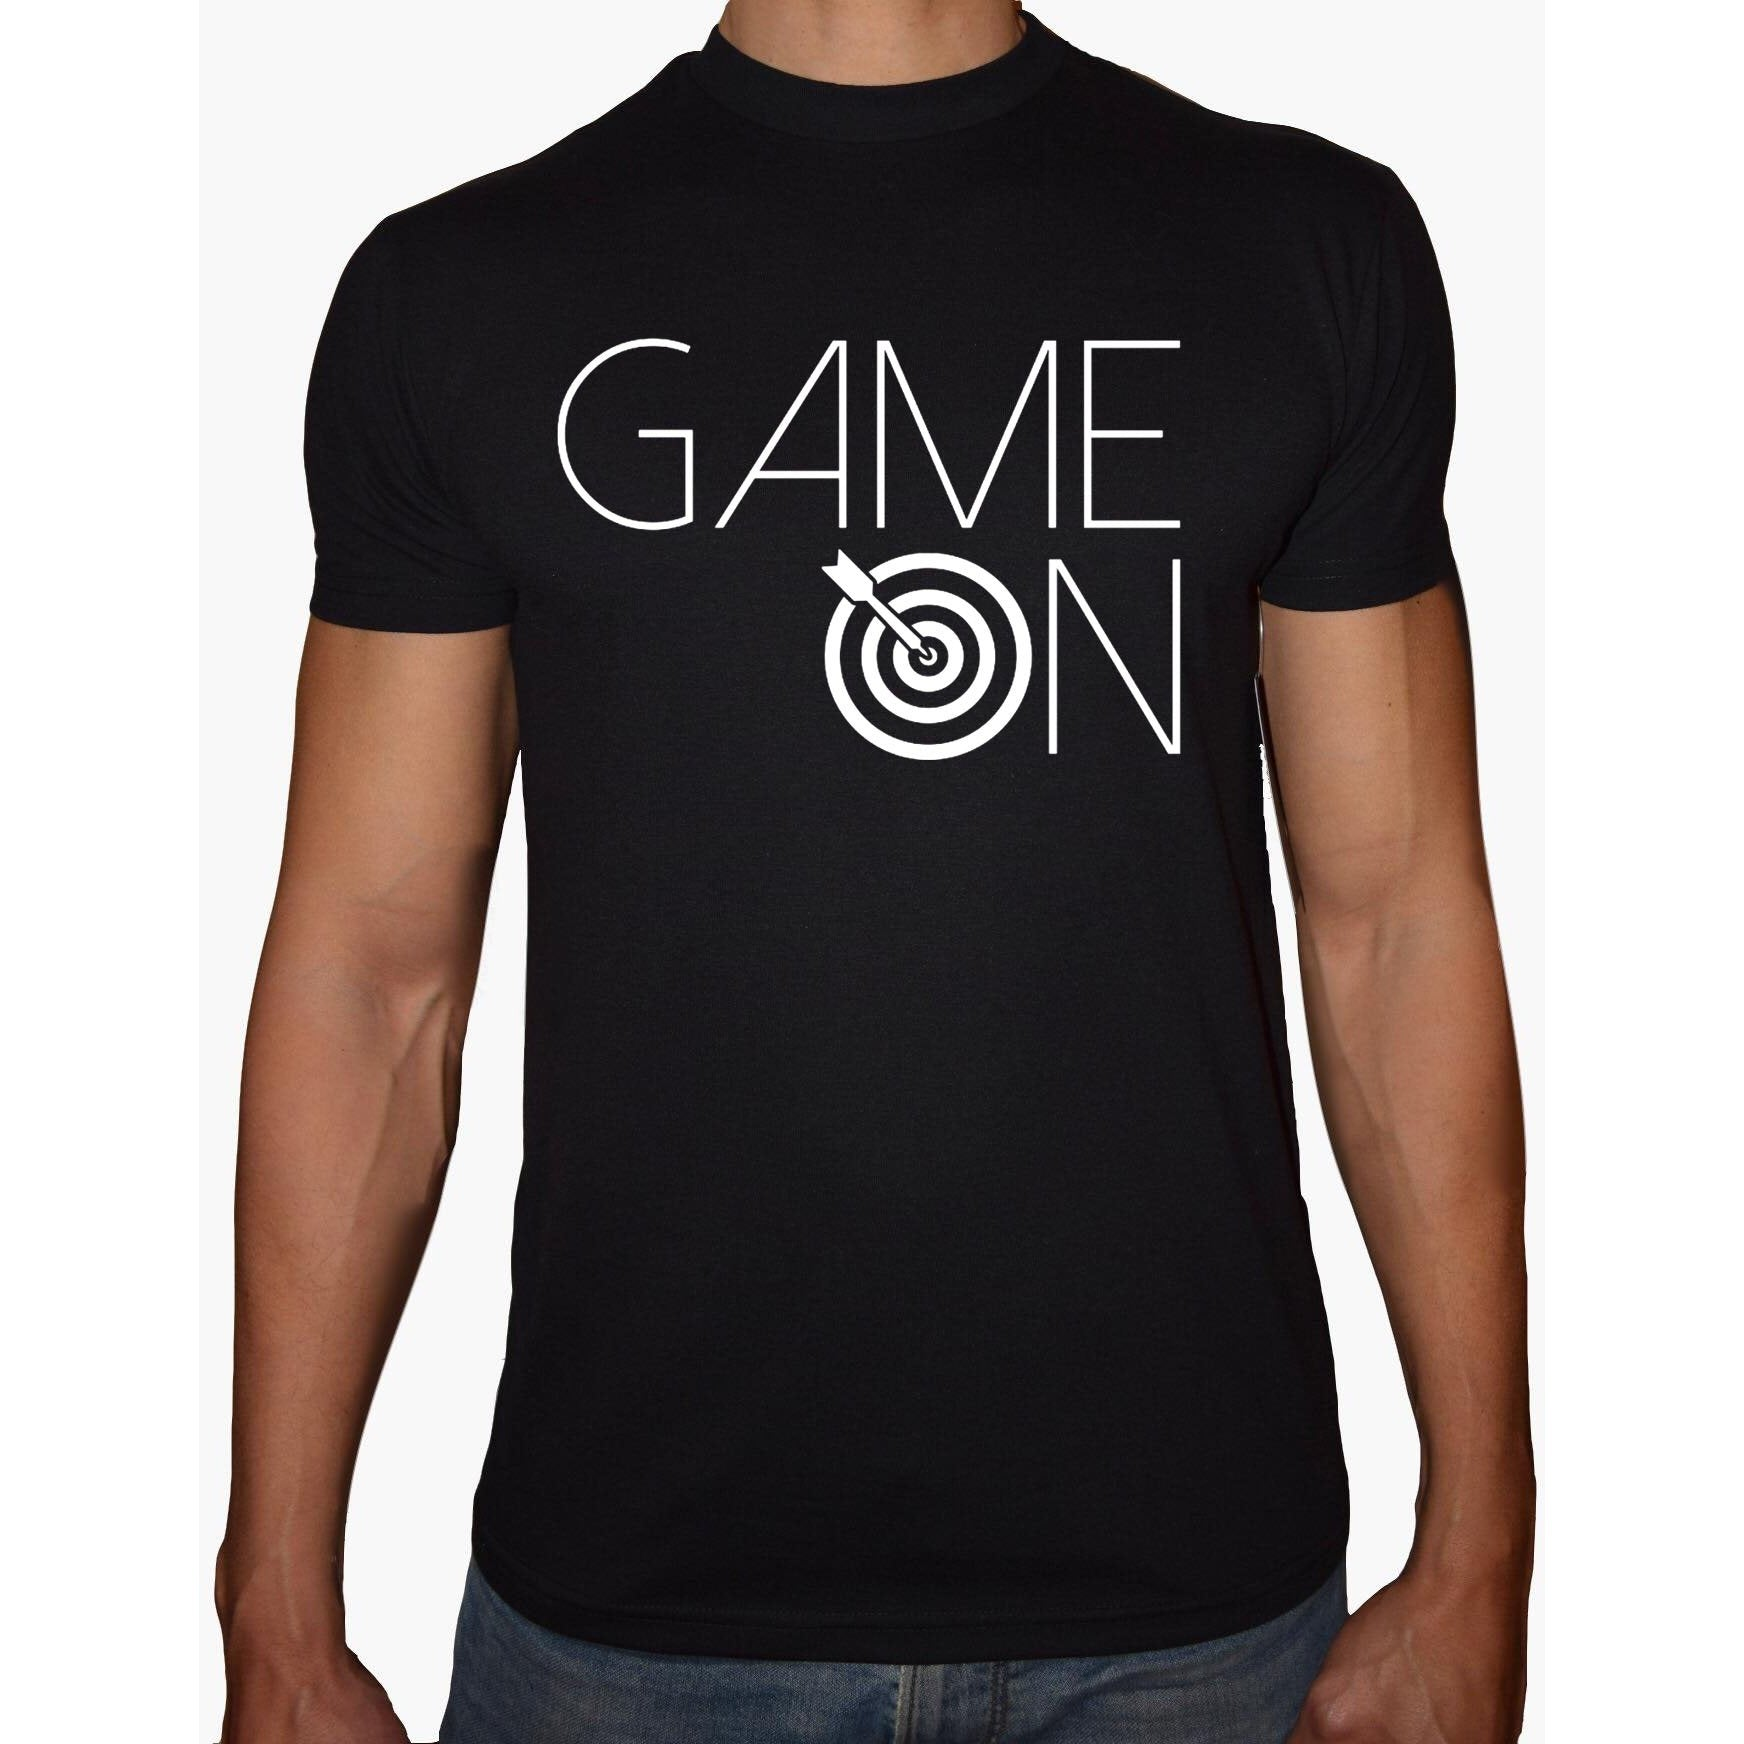 Phoenix Black Round Neck Printed Shirt Men (Game on)